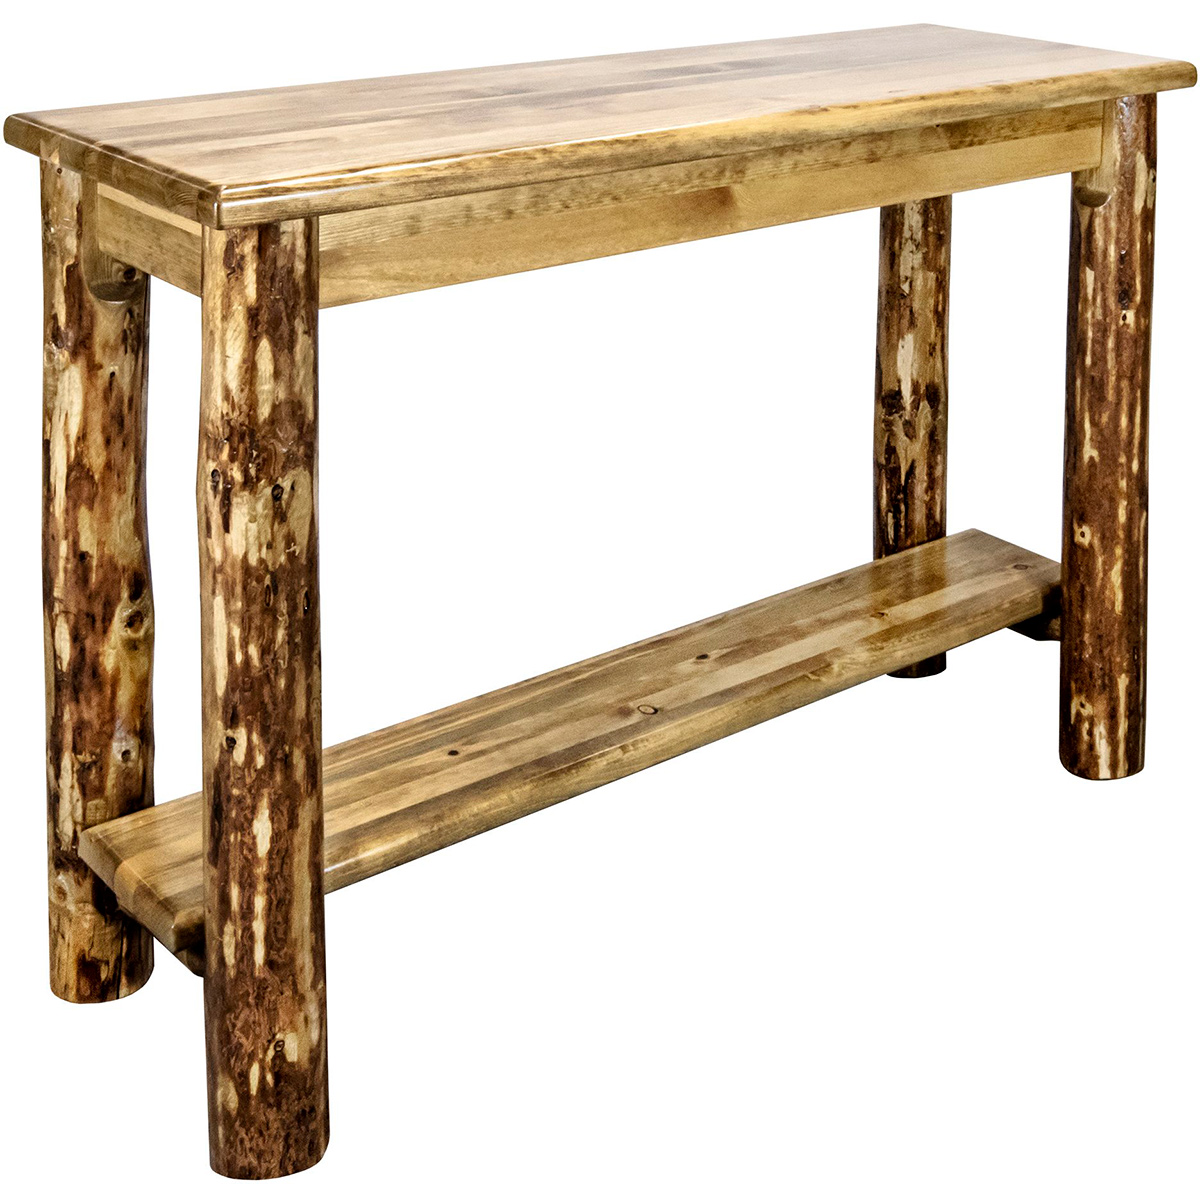 Woodsman Console Table with Shelf